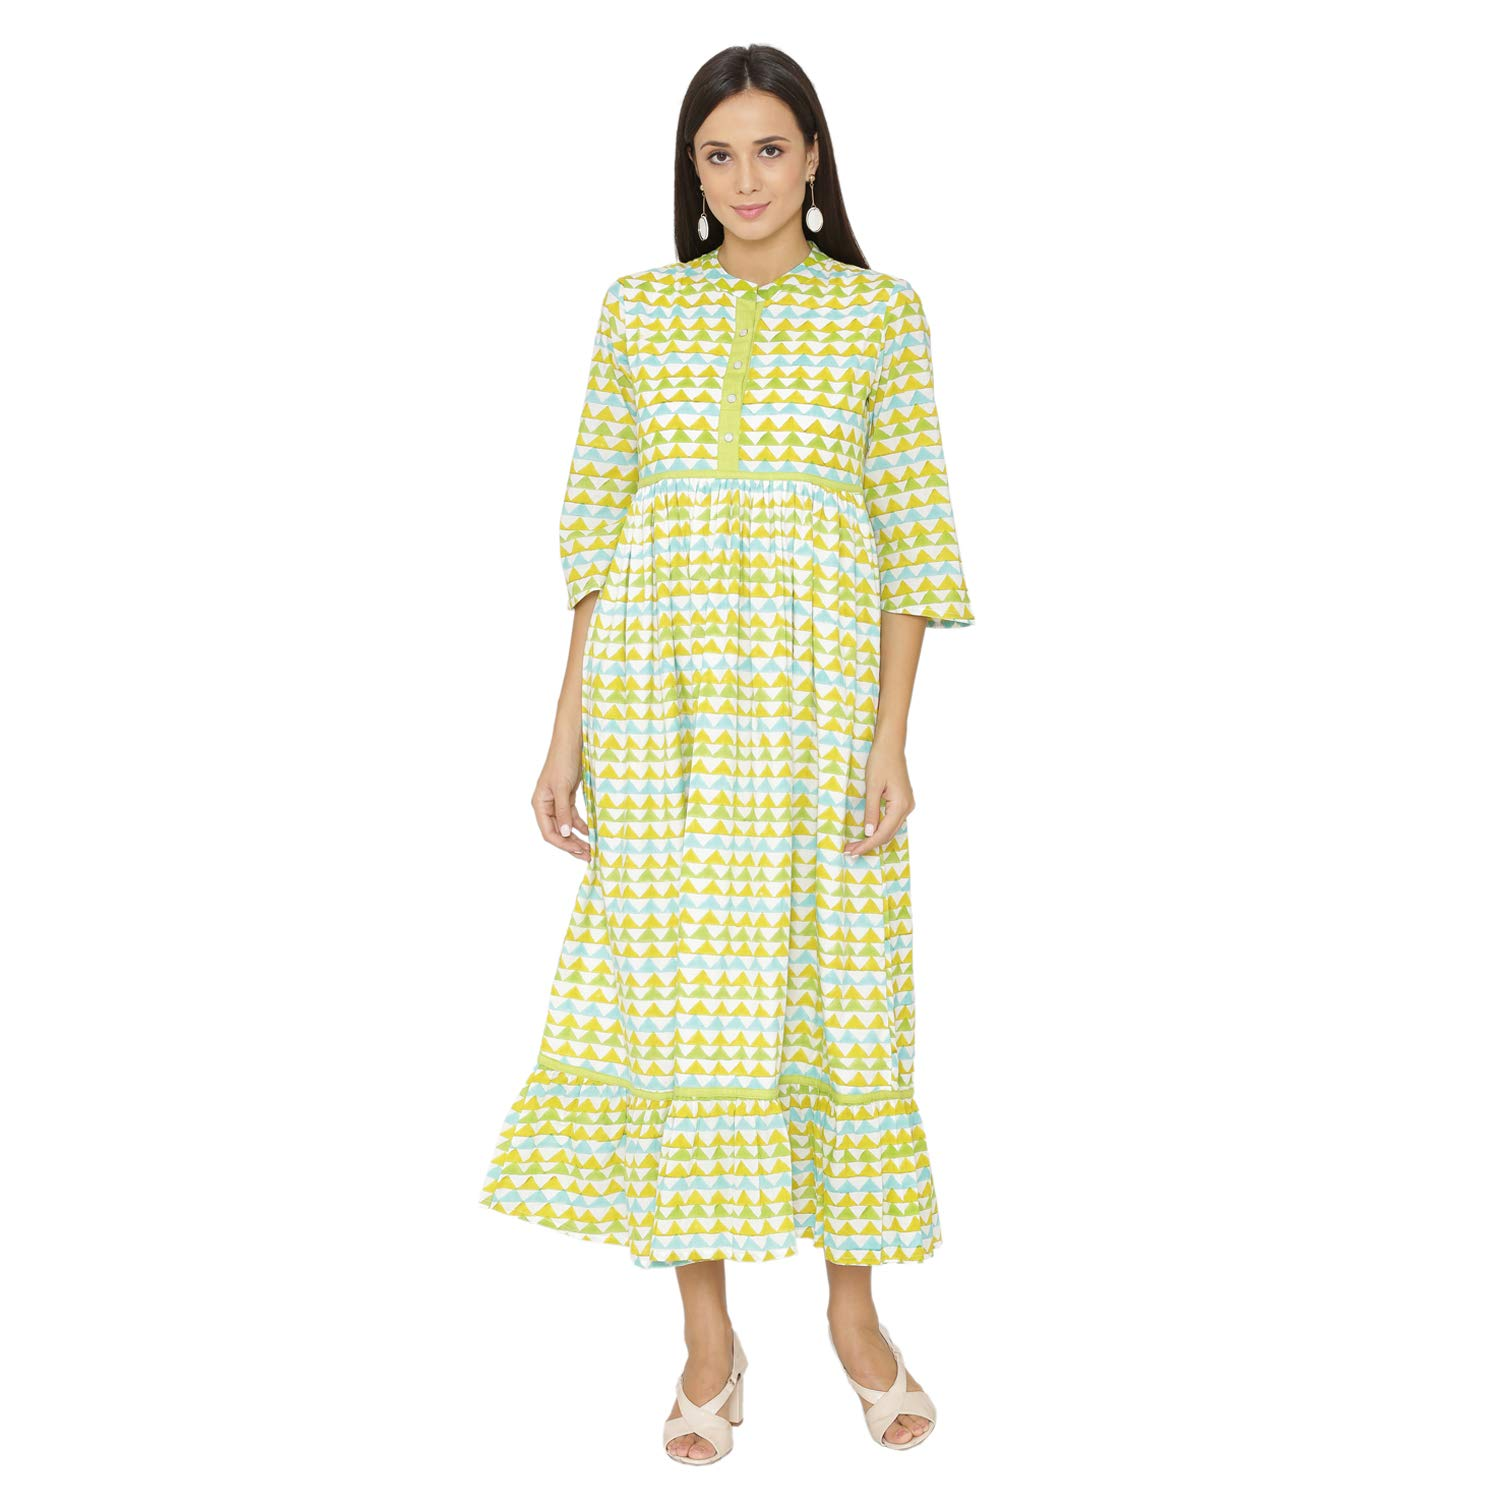 Available at Amazon: PINKSHINK Women's Green Pure Cotton Casual Loose Summer Maxi Dress with Pockets